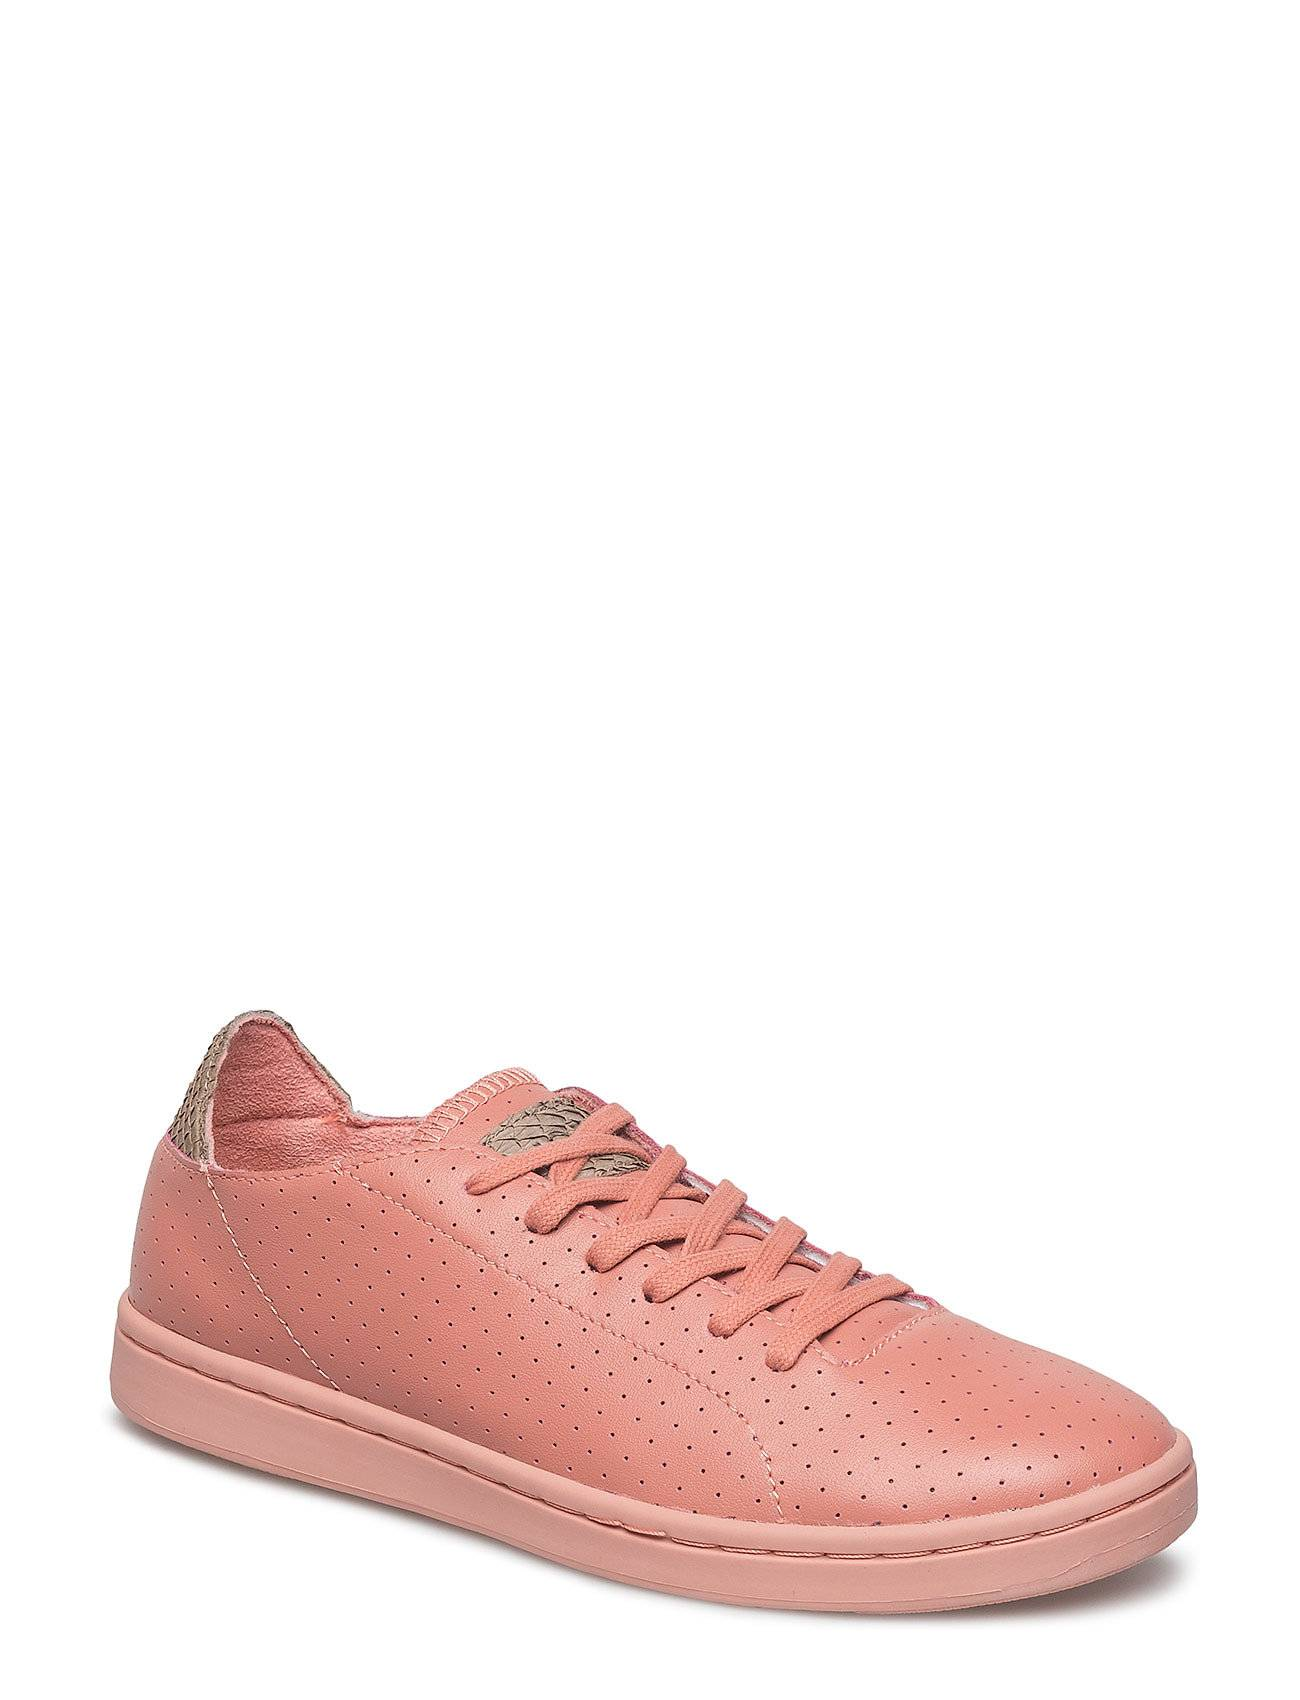 Woden Jane Perforated